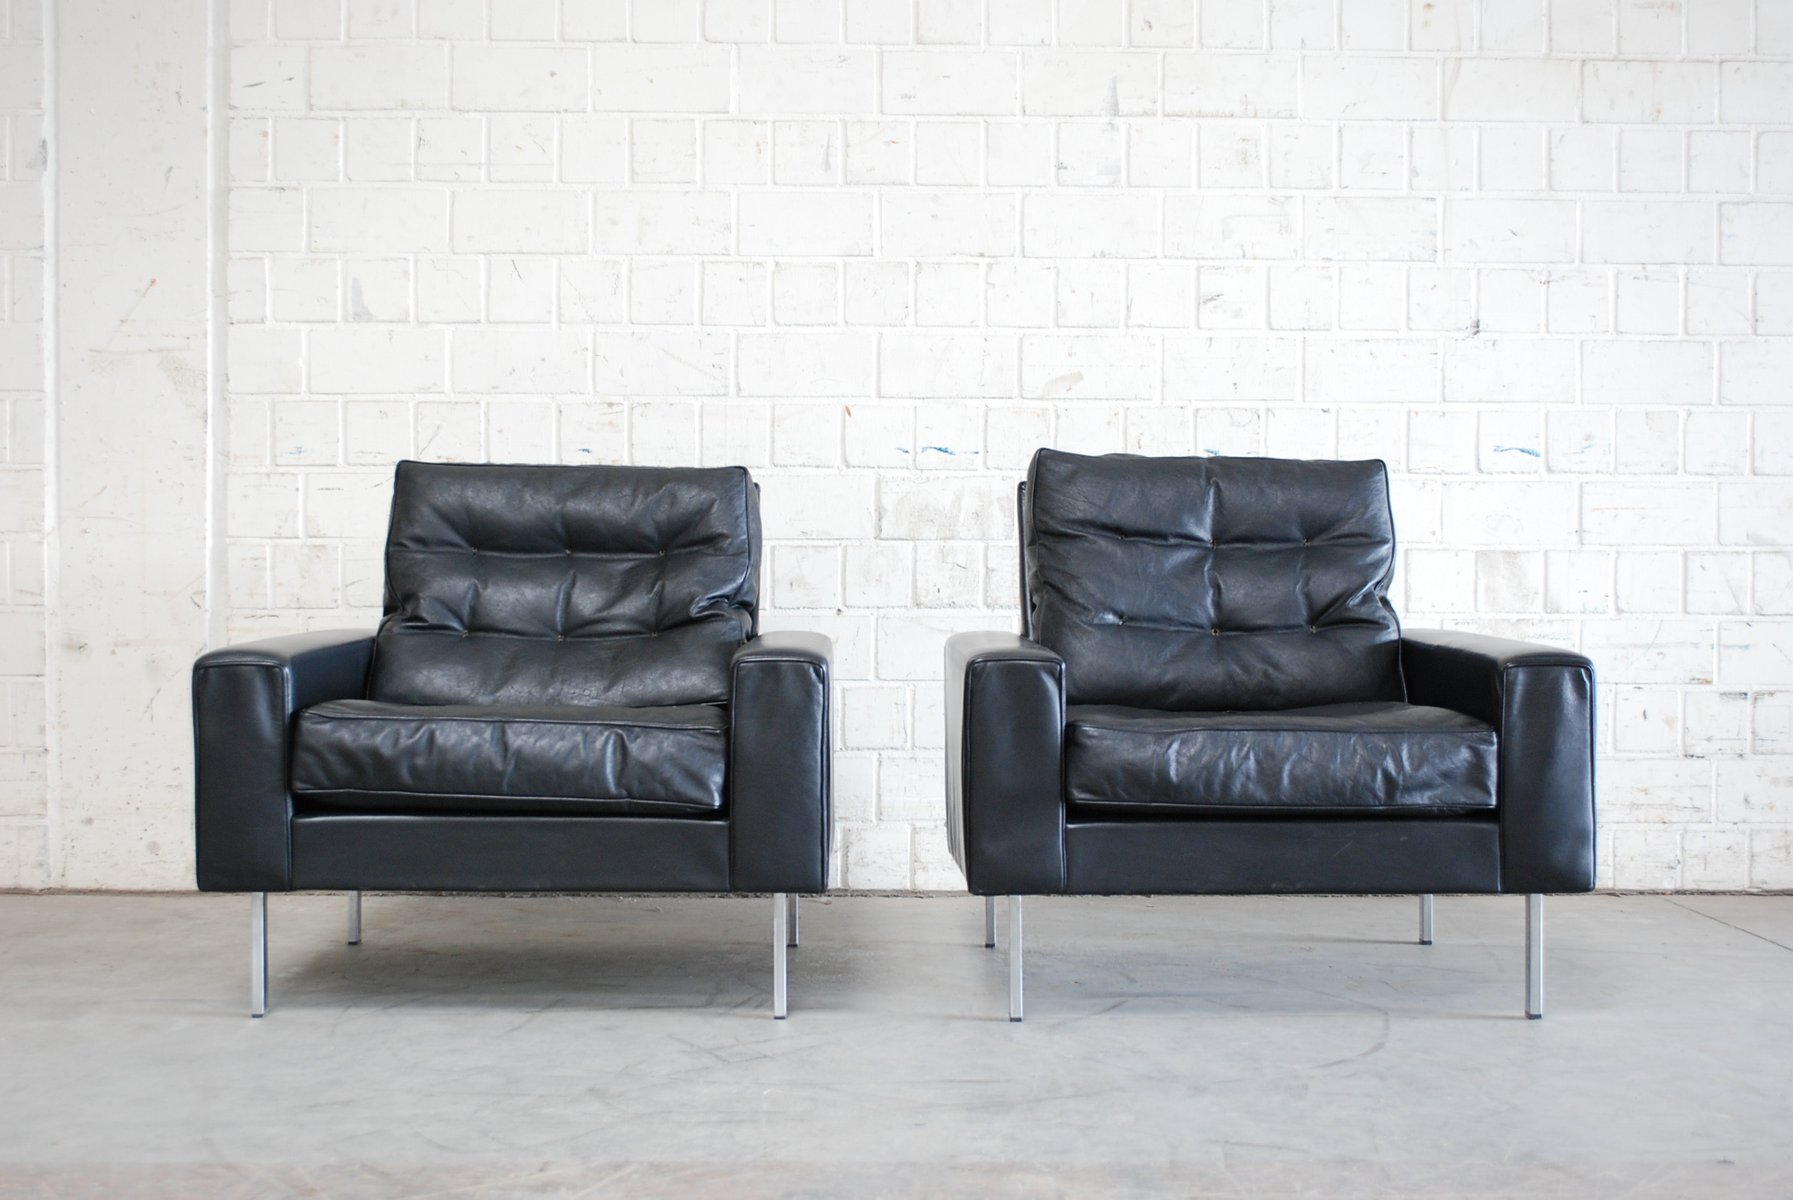 Antique black leather chairs - Vintage Black Leather Armchairs From De Sede 1967 Set Of 2